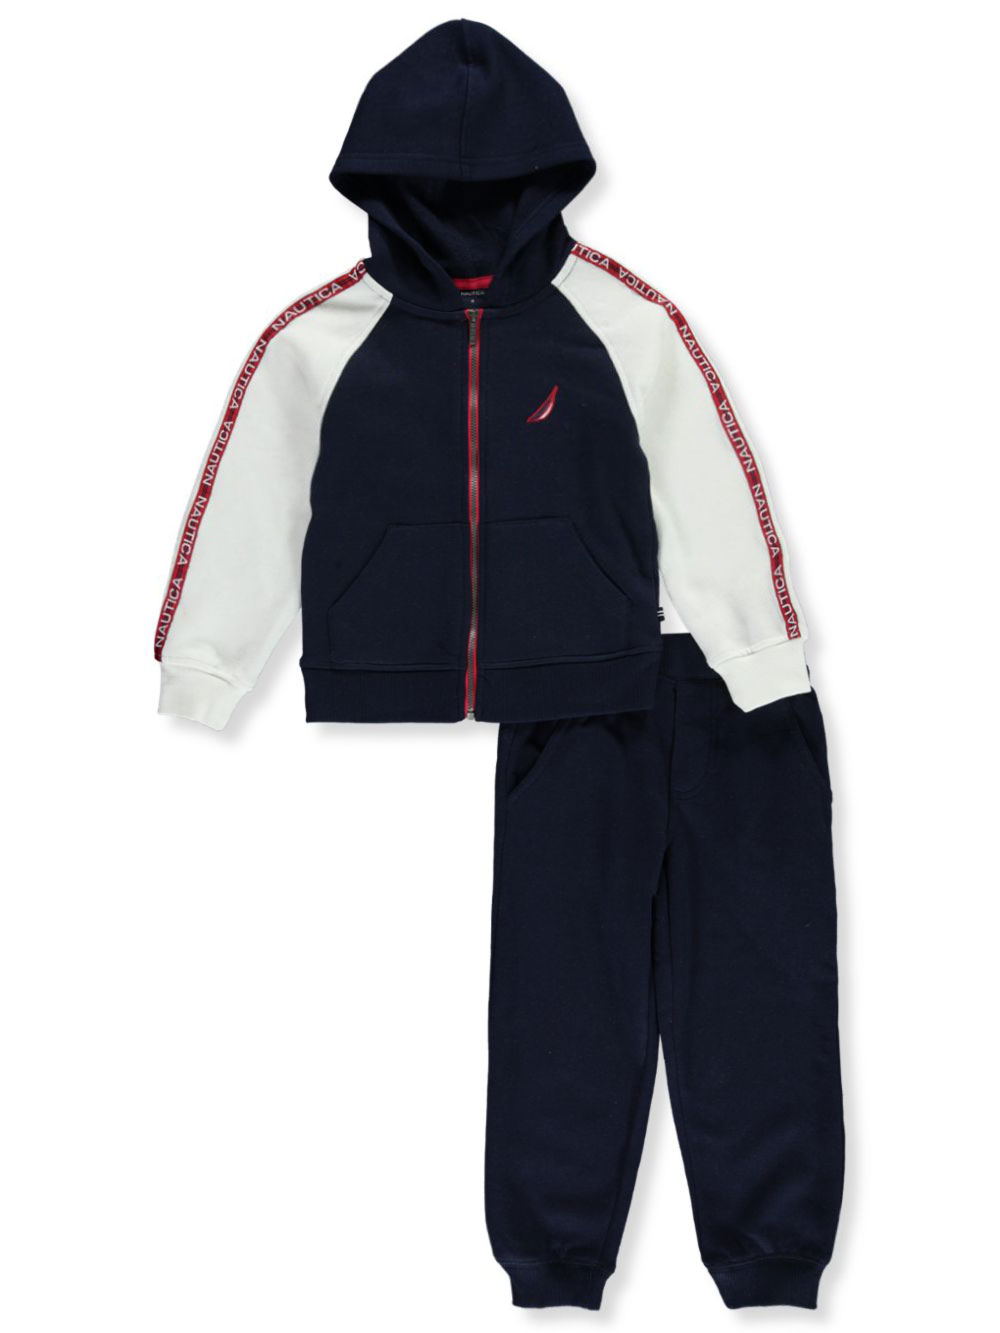 Size 5 Pant Sets for Boys